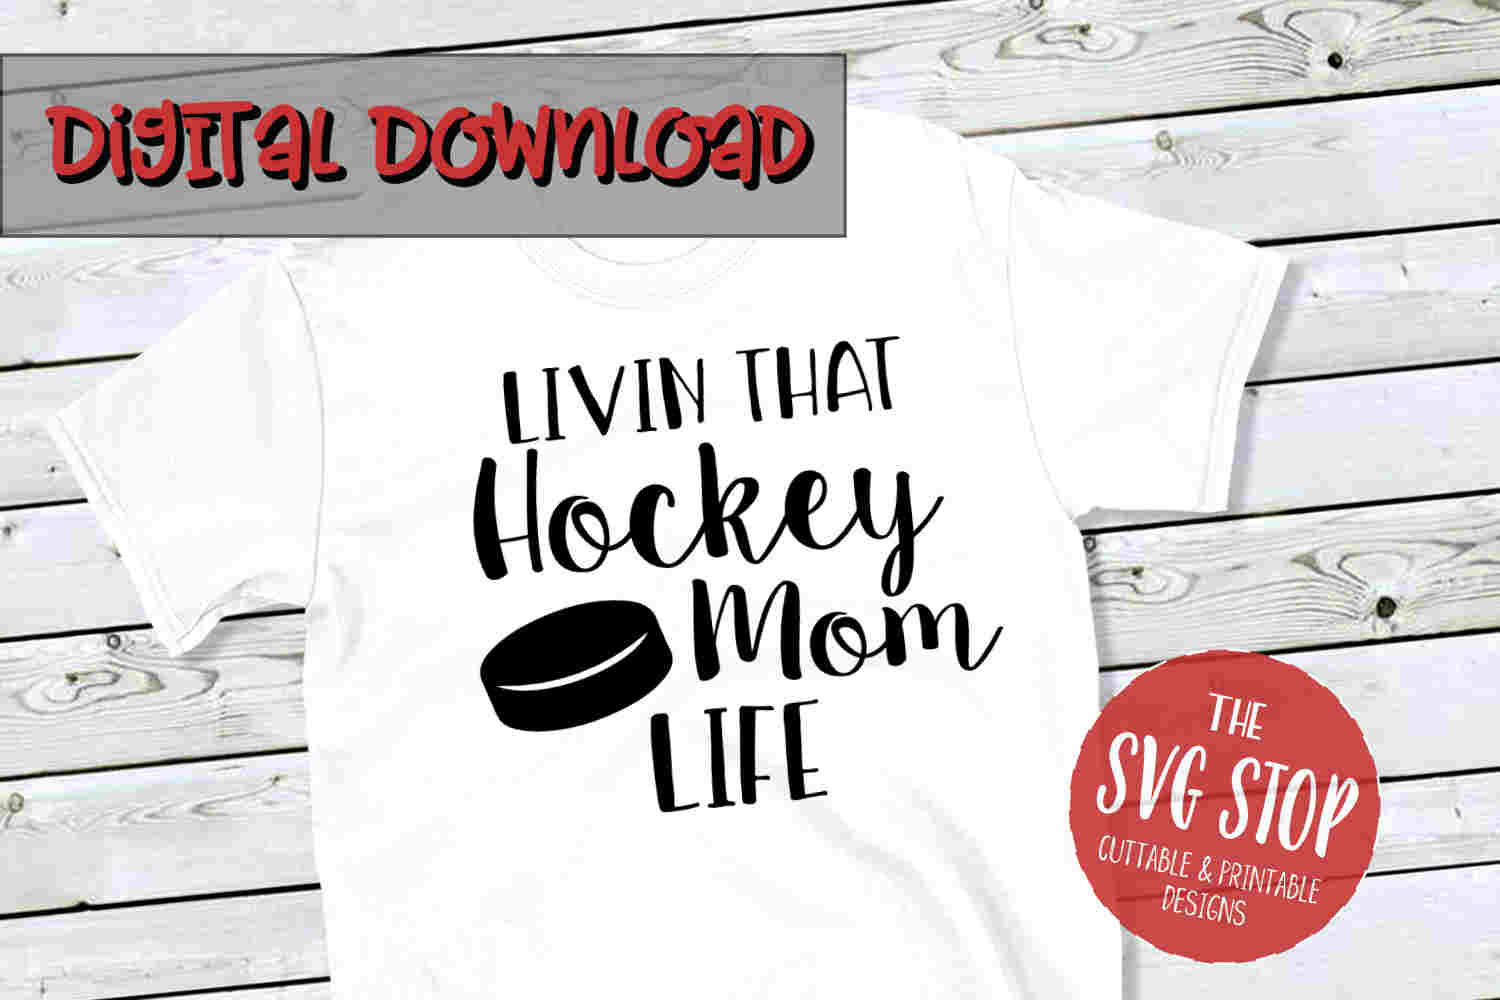 Hockey Mom Life -SVG, PNG, DXF example image 1